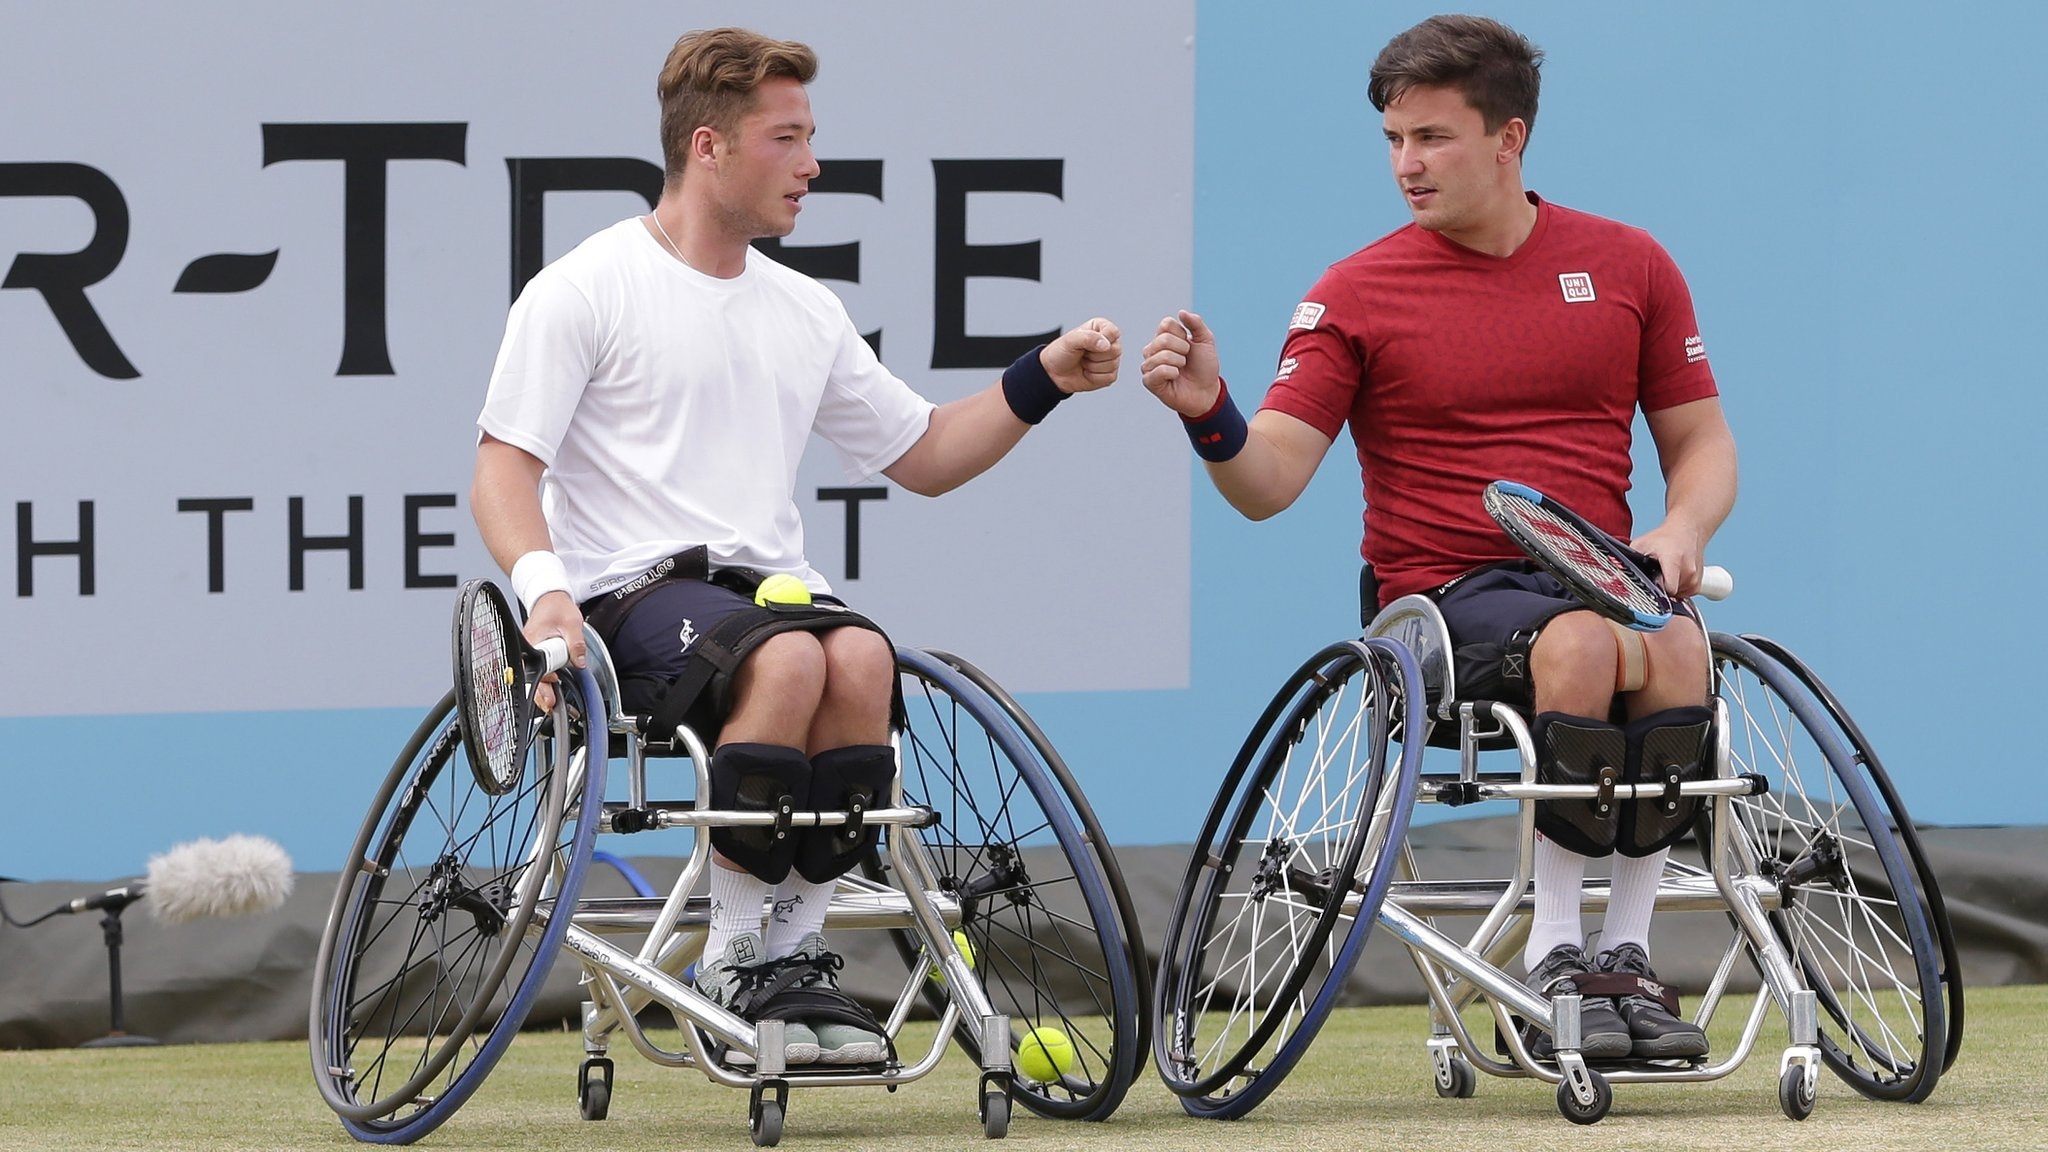 Queen's wheelchair tournament to be ranking event